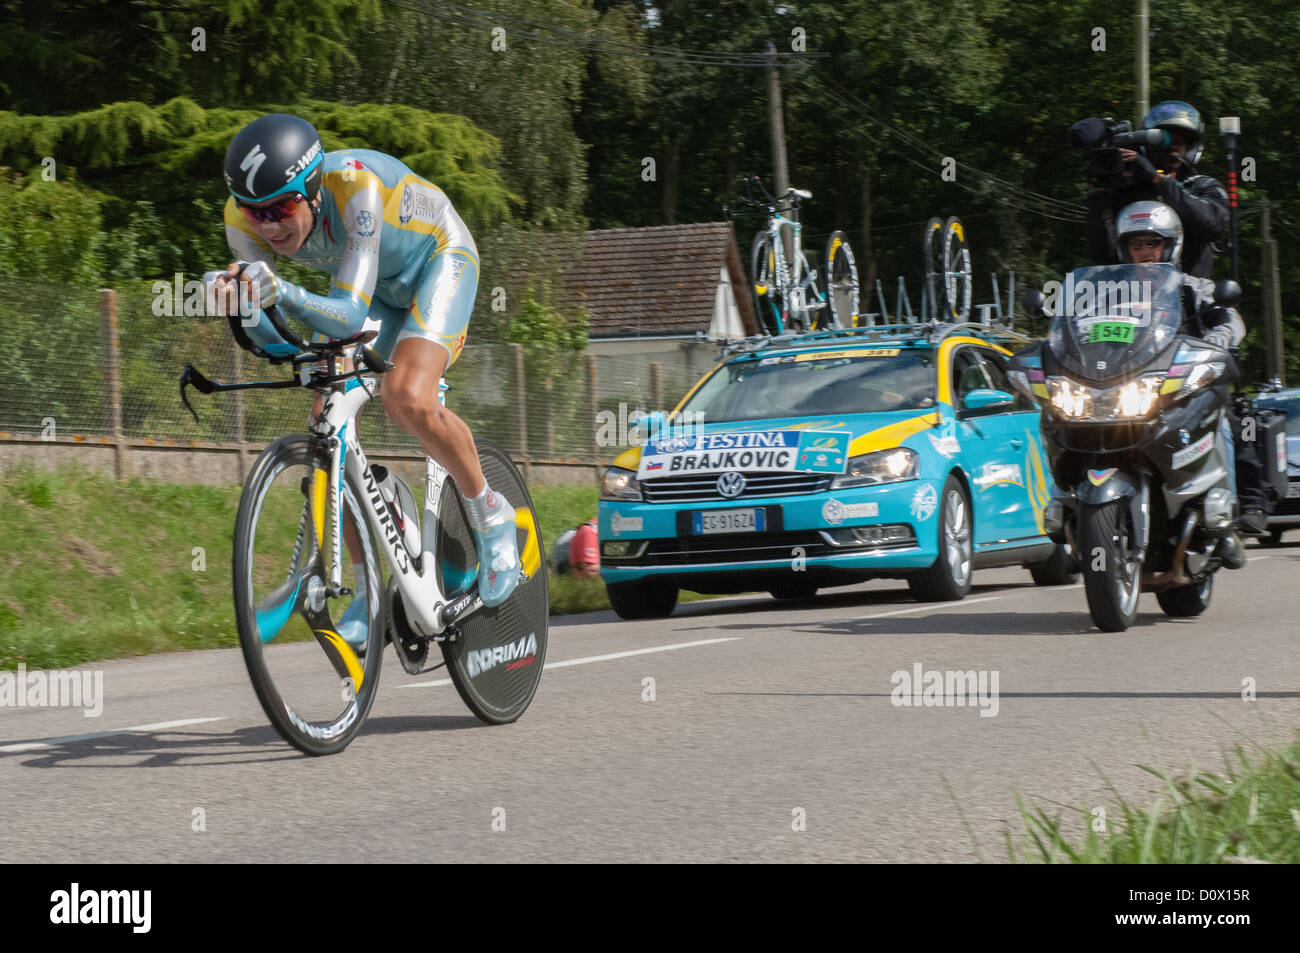 Janez Brajkovic of team Astana on the 19th Time Trial stage of the 2012 Tour de France near Illiers-Combray in the - Stock Image